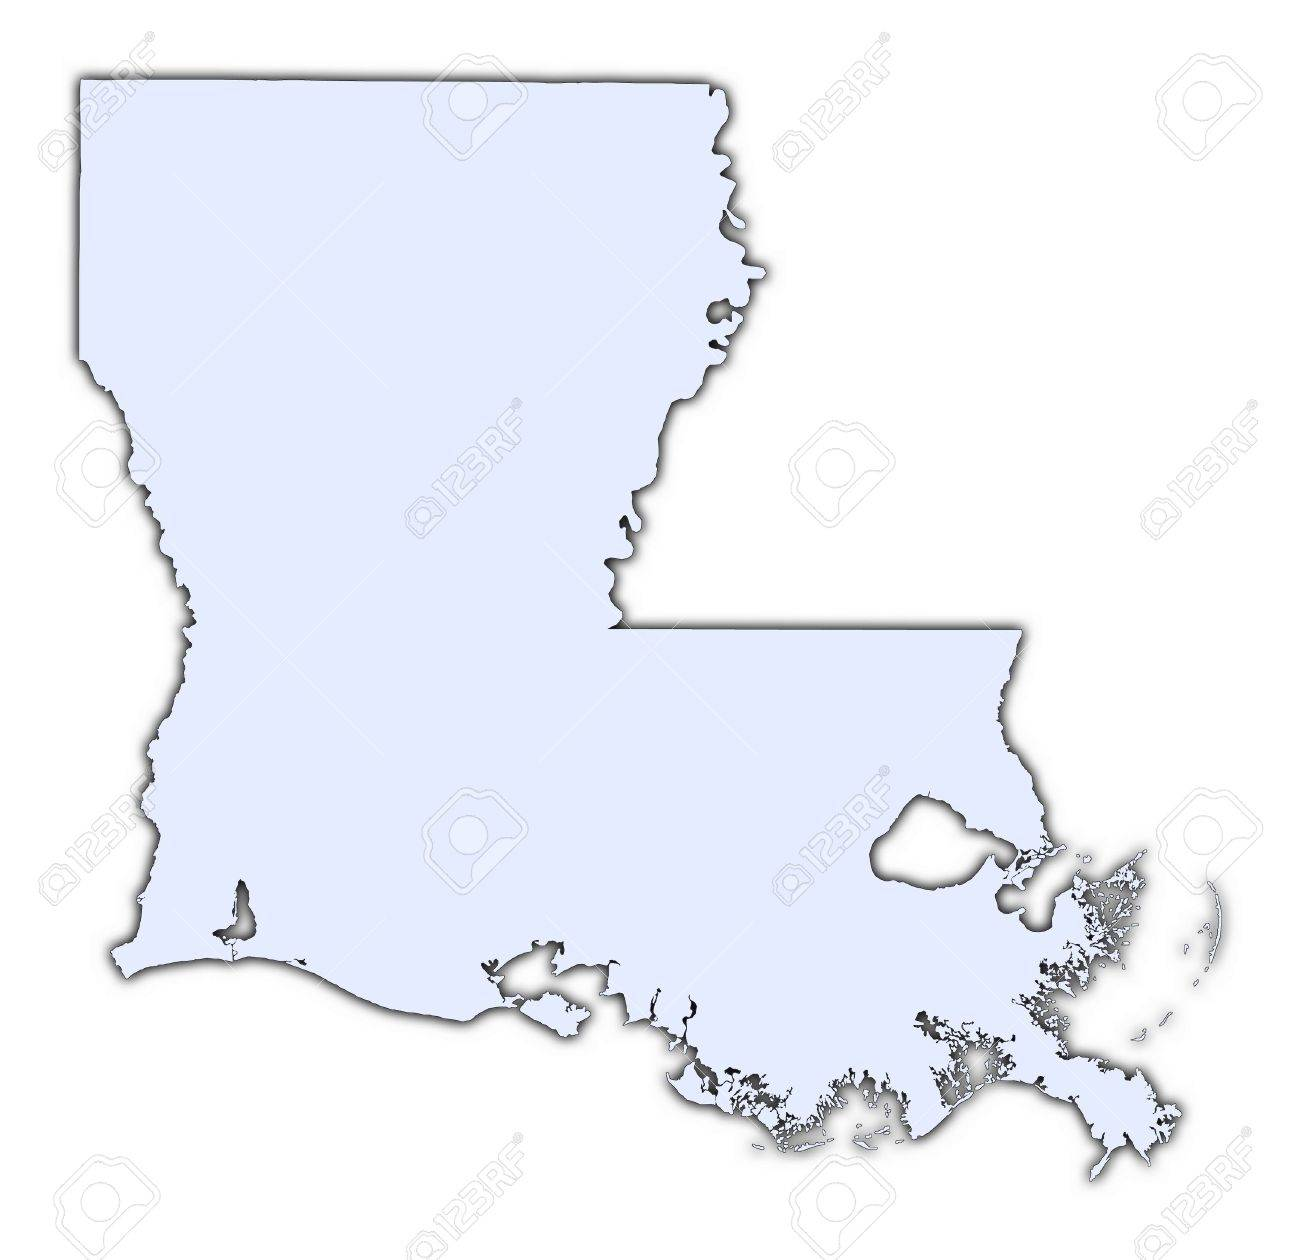 Louisiana Usa Light Blue Map With Shadow High Resolution Mercator Projection